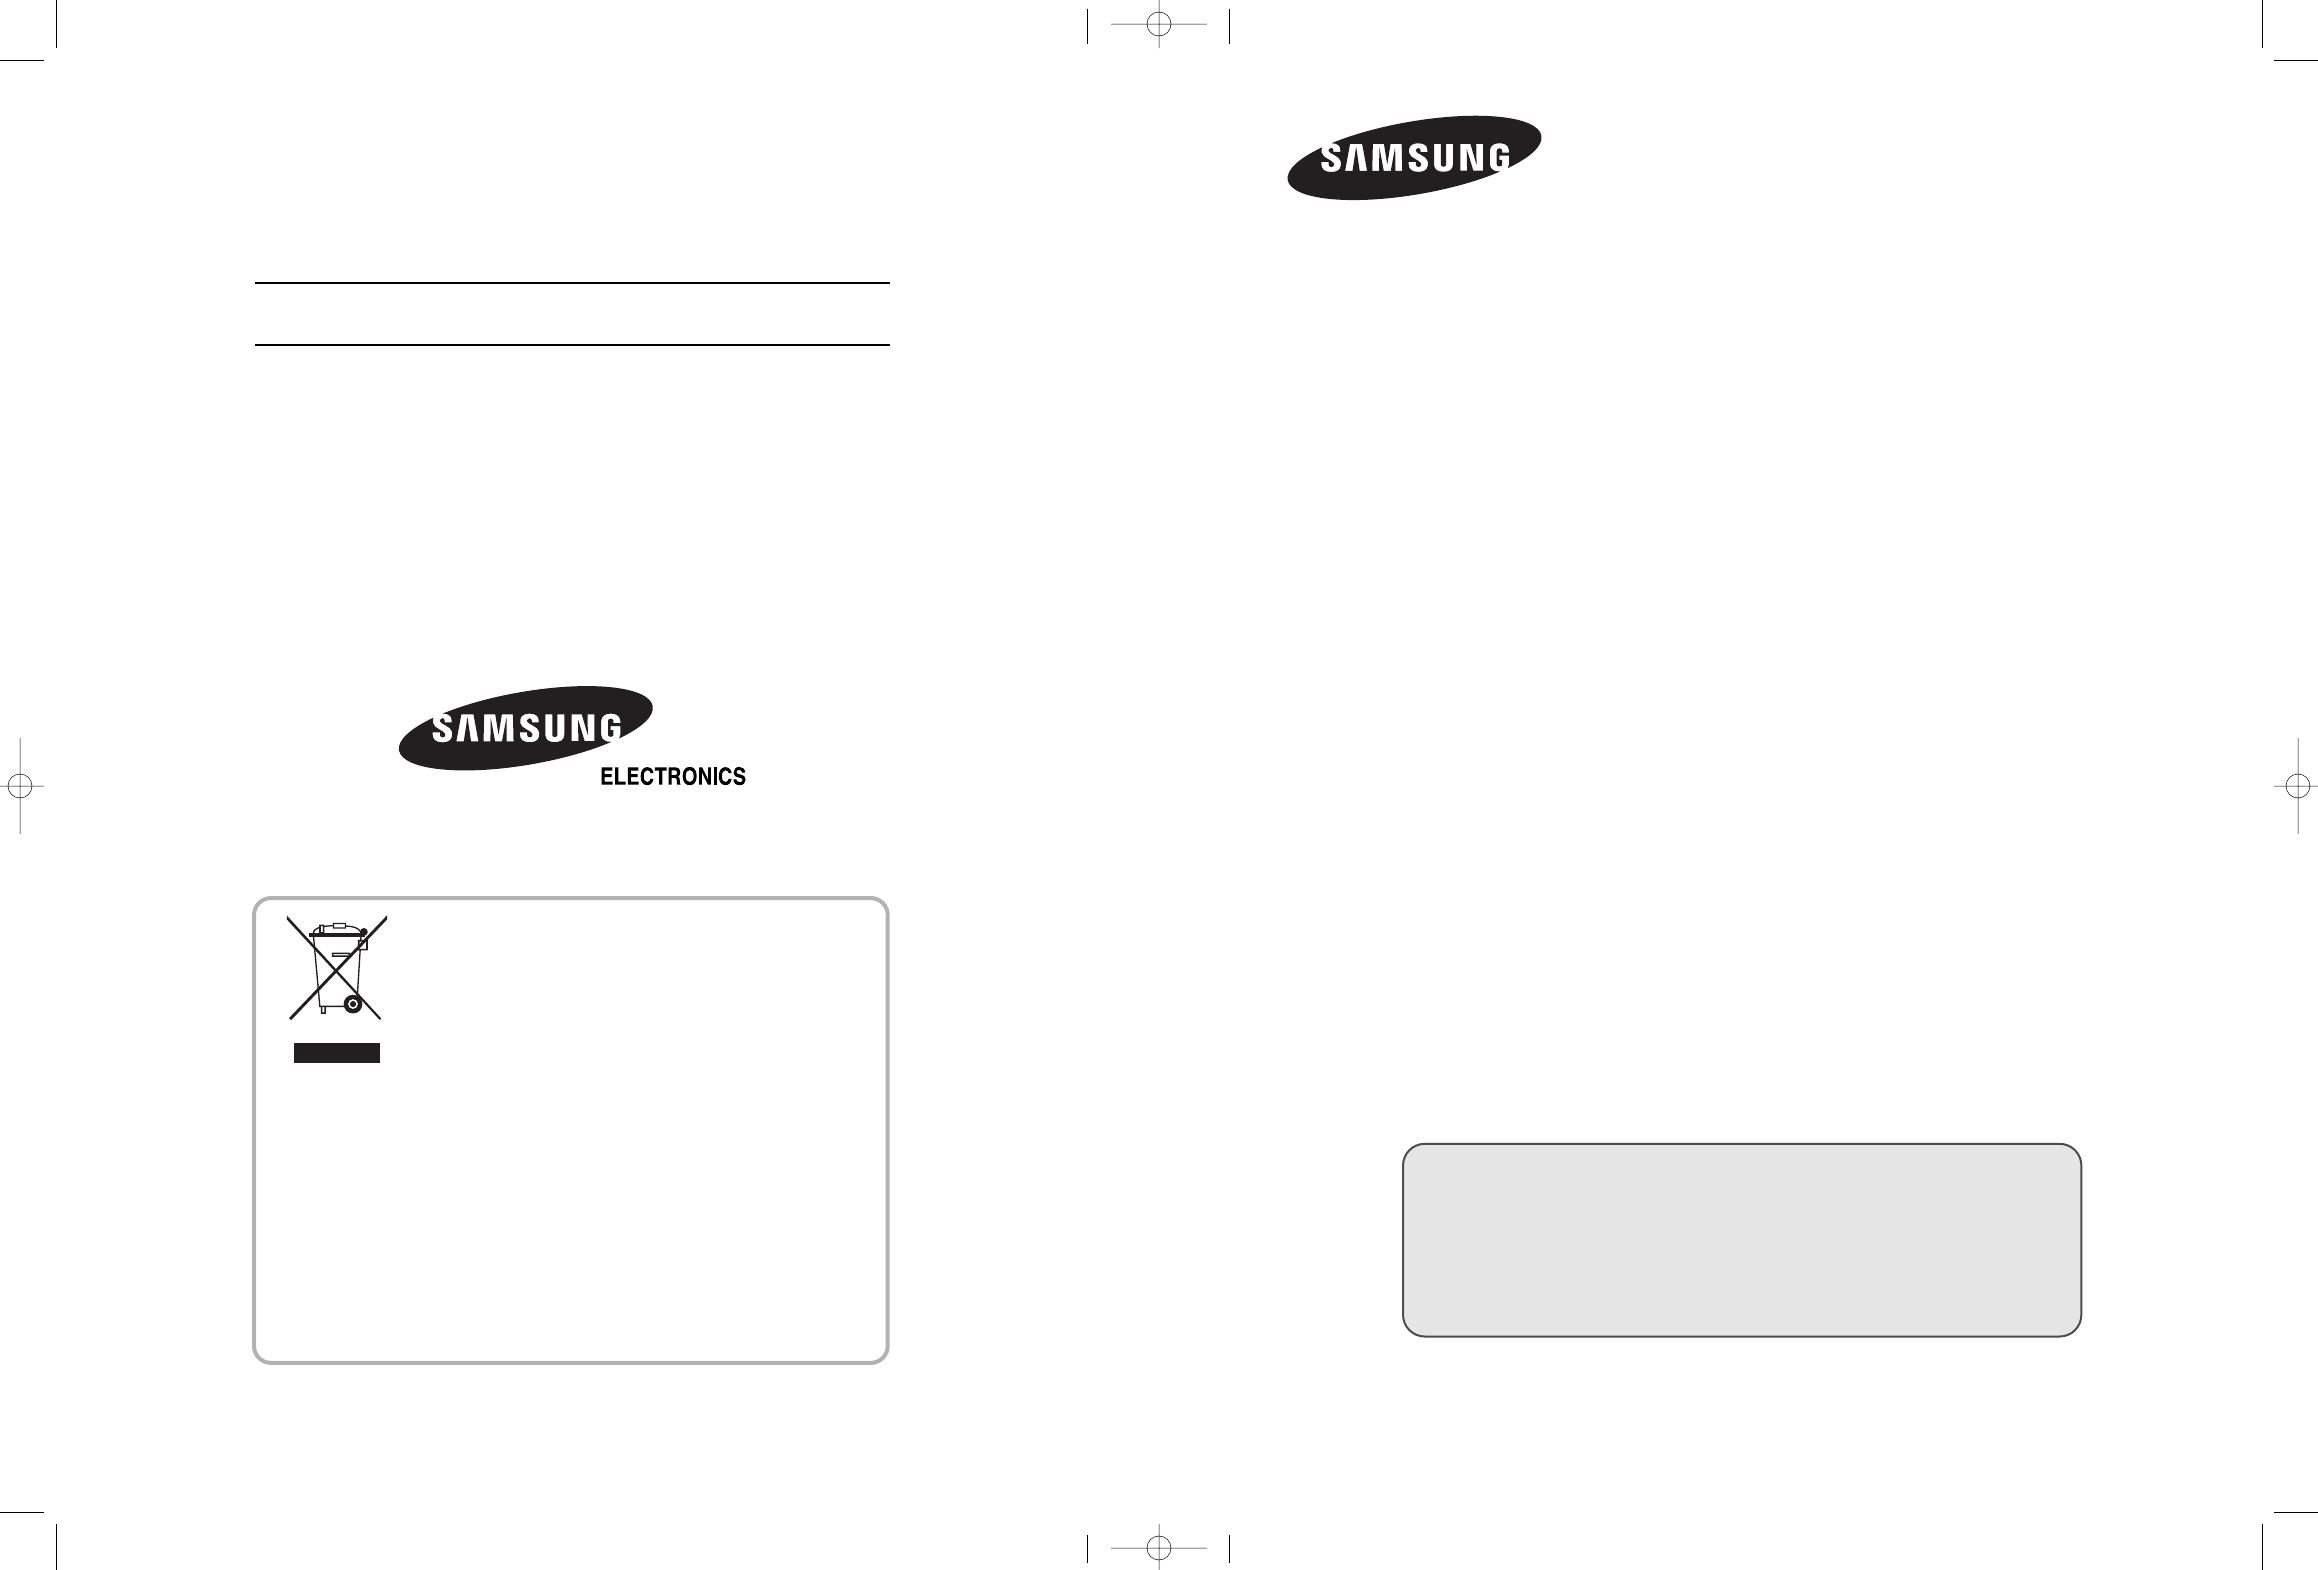 Samsung Flat Panel Television LE32M5 User Guide